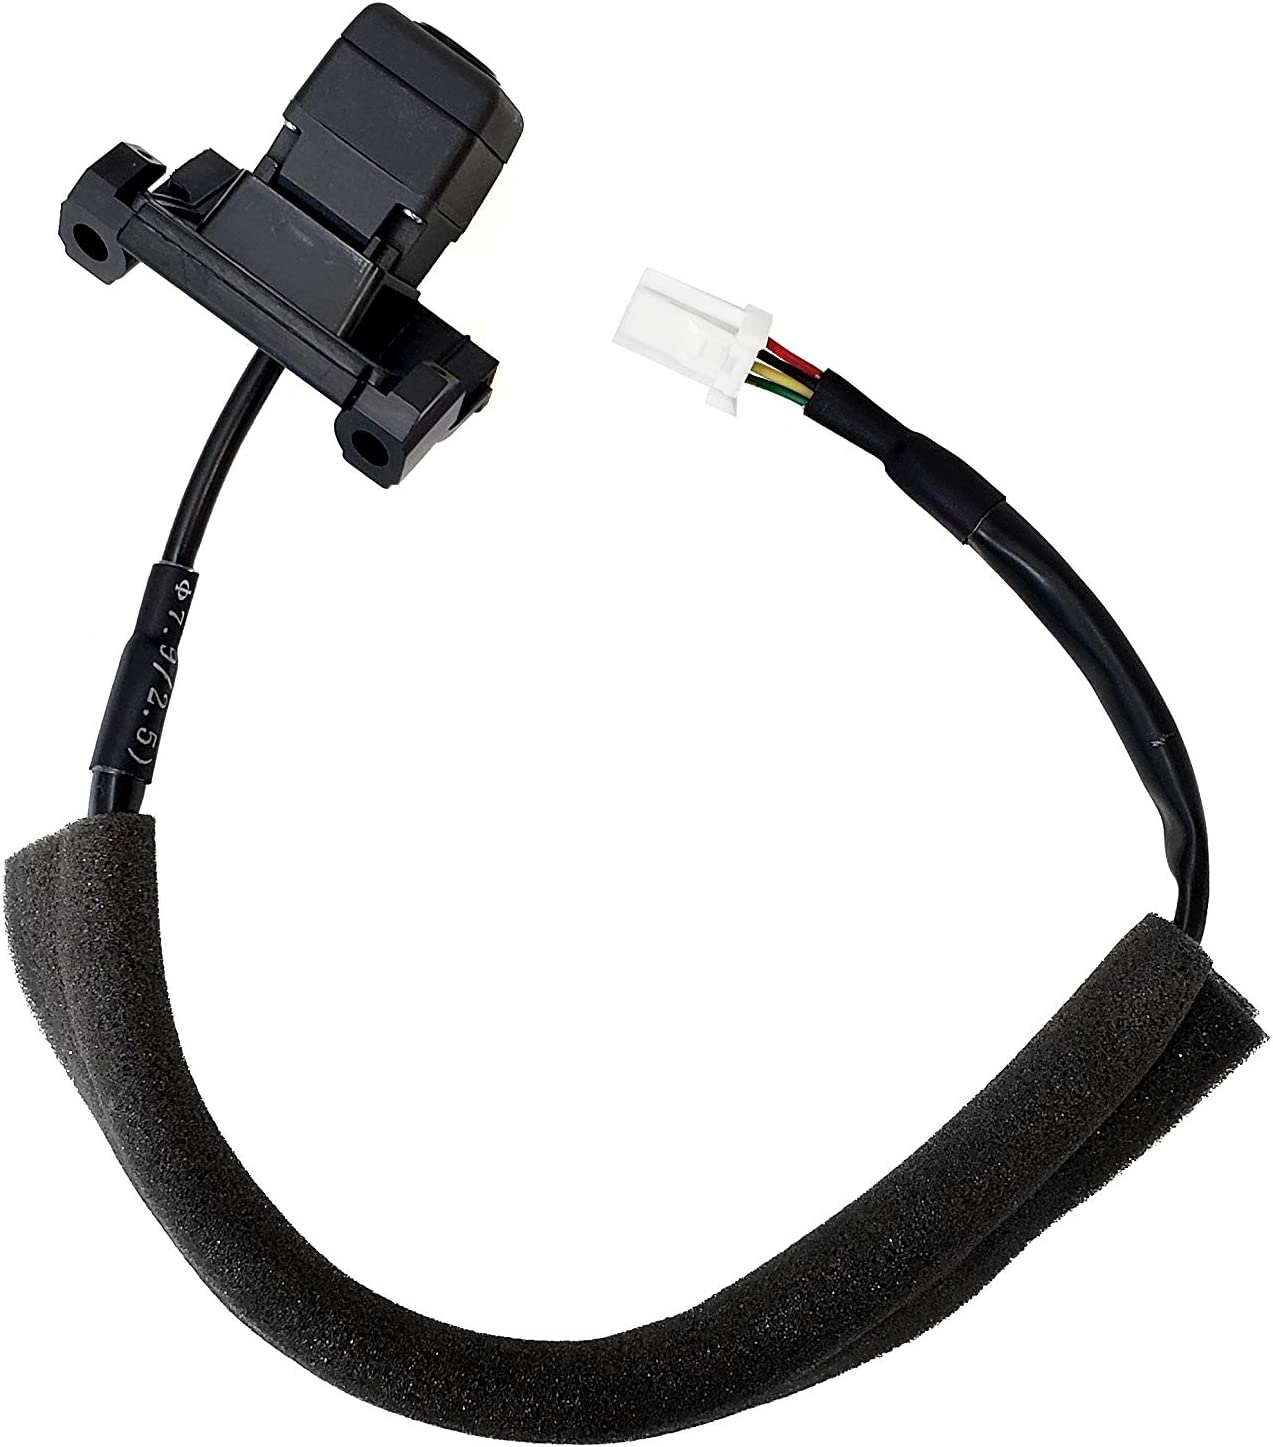 2004-2010 Master Tailgaters Replacement for Infiniti QX56 Backup Camera OE Part # 28442-7S110